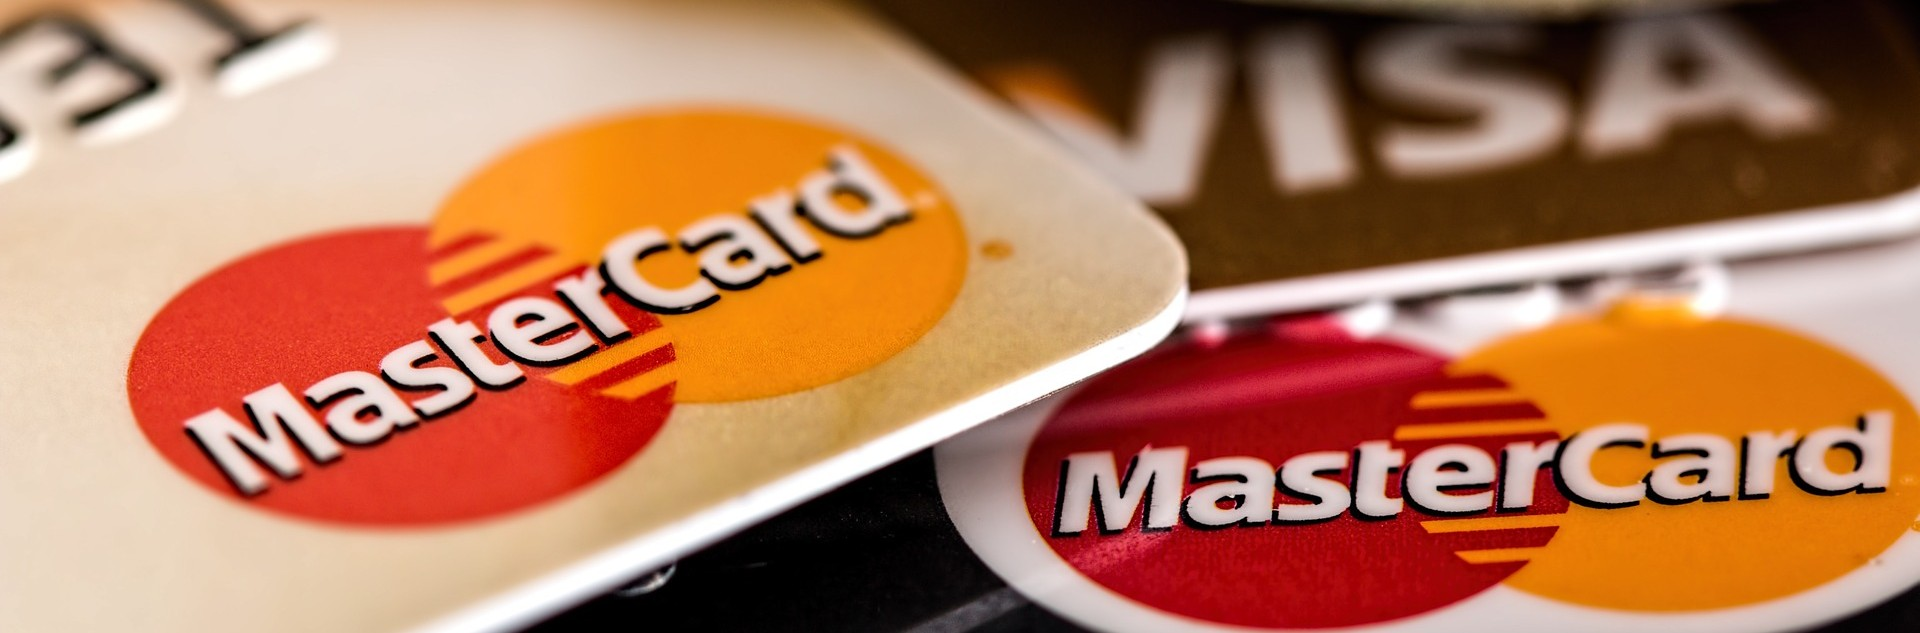 Avoid High Risk Status and Accept Credit Cards Online for Less